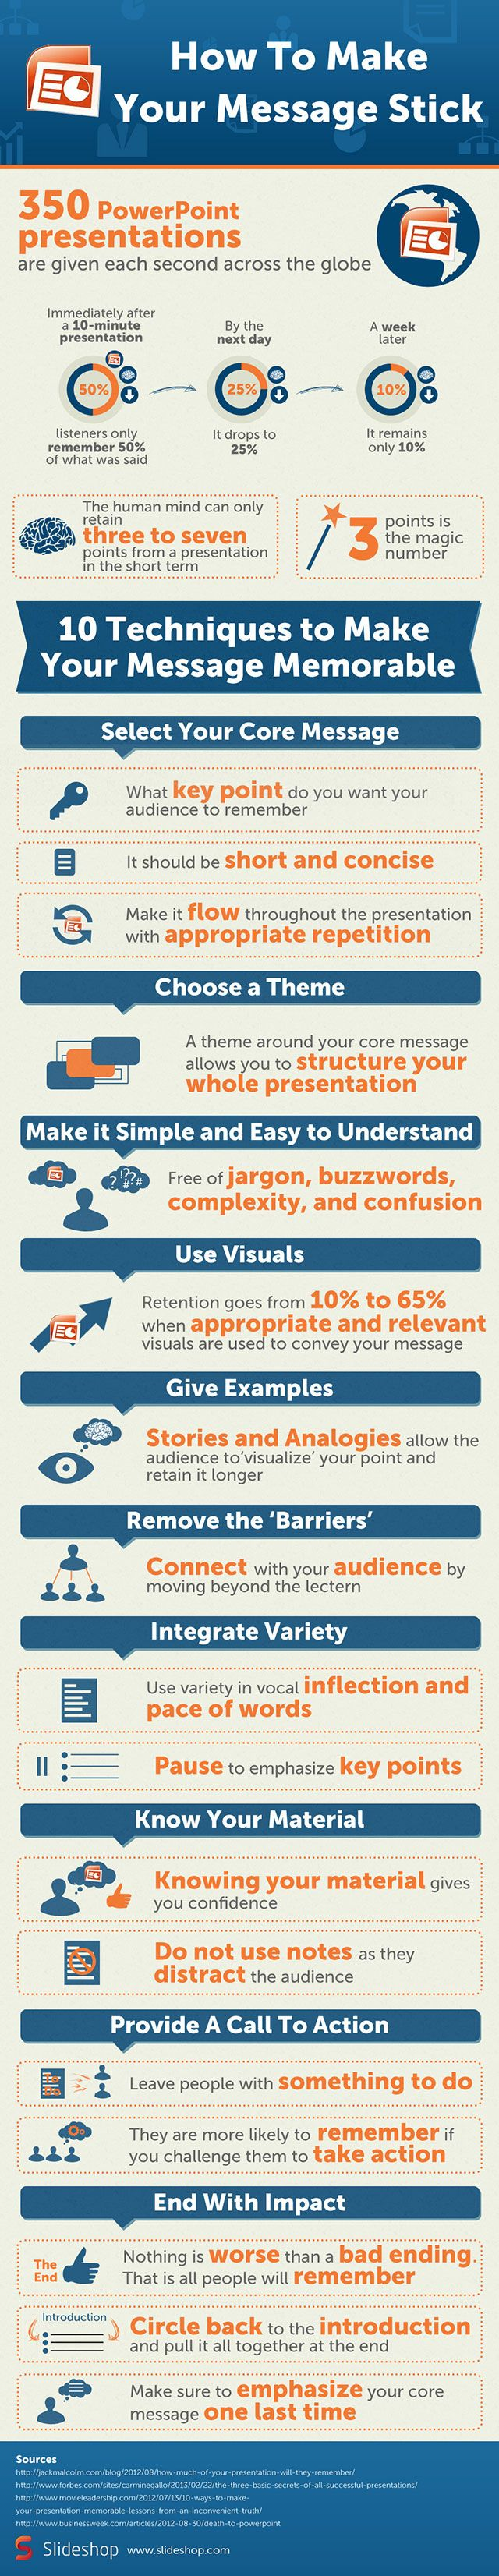 20 best Resources for Conference Speakers images on Pinterest ...